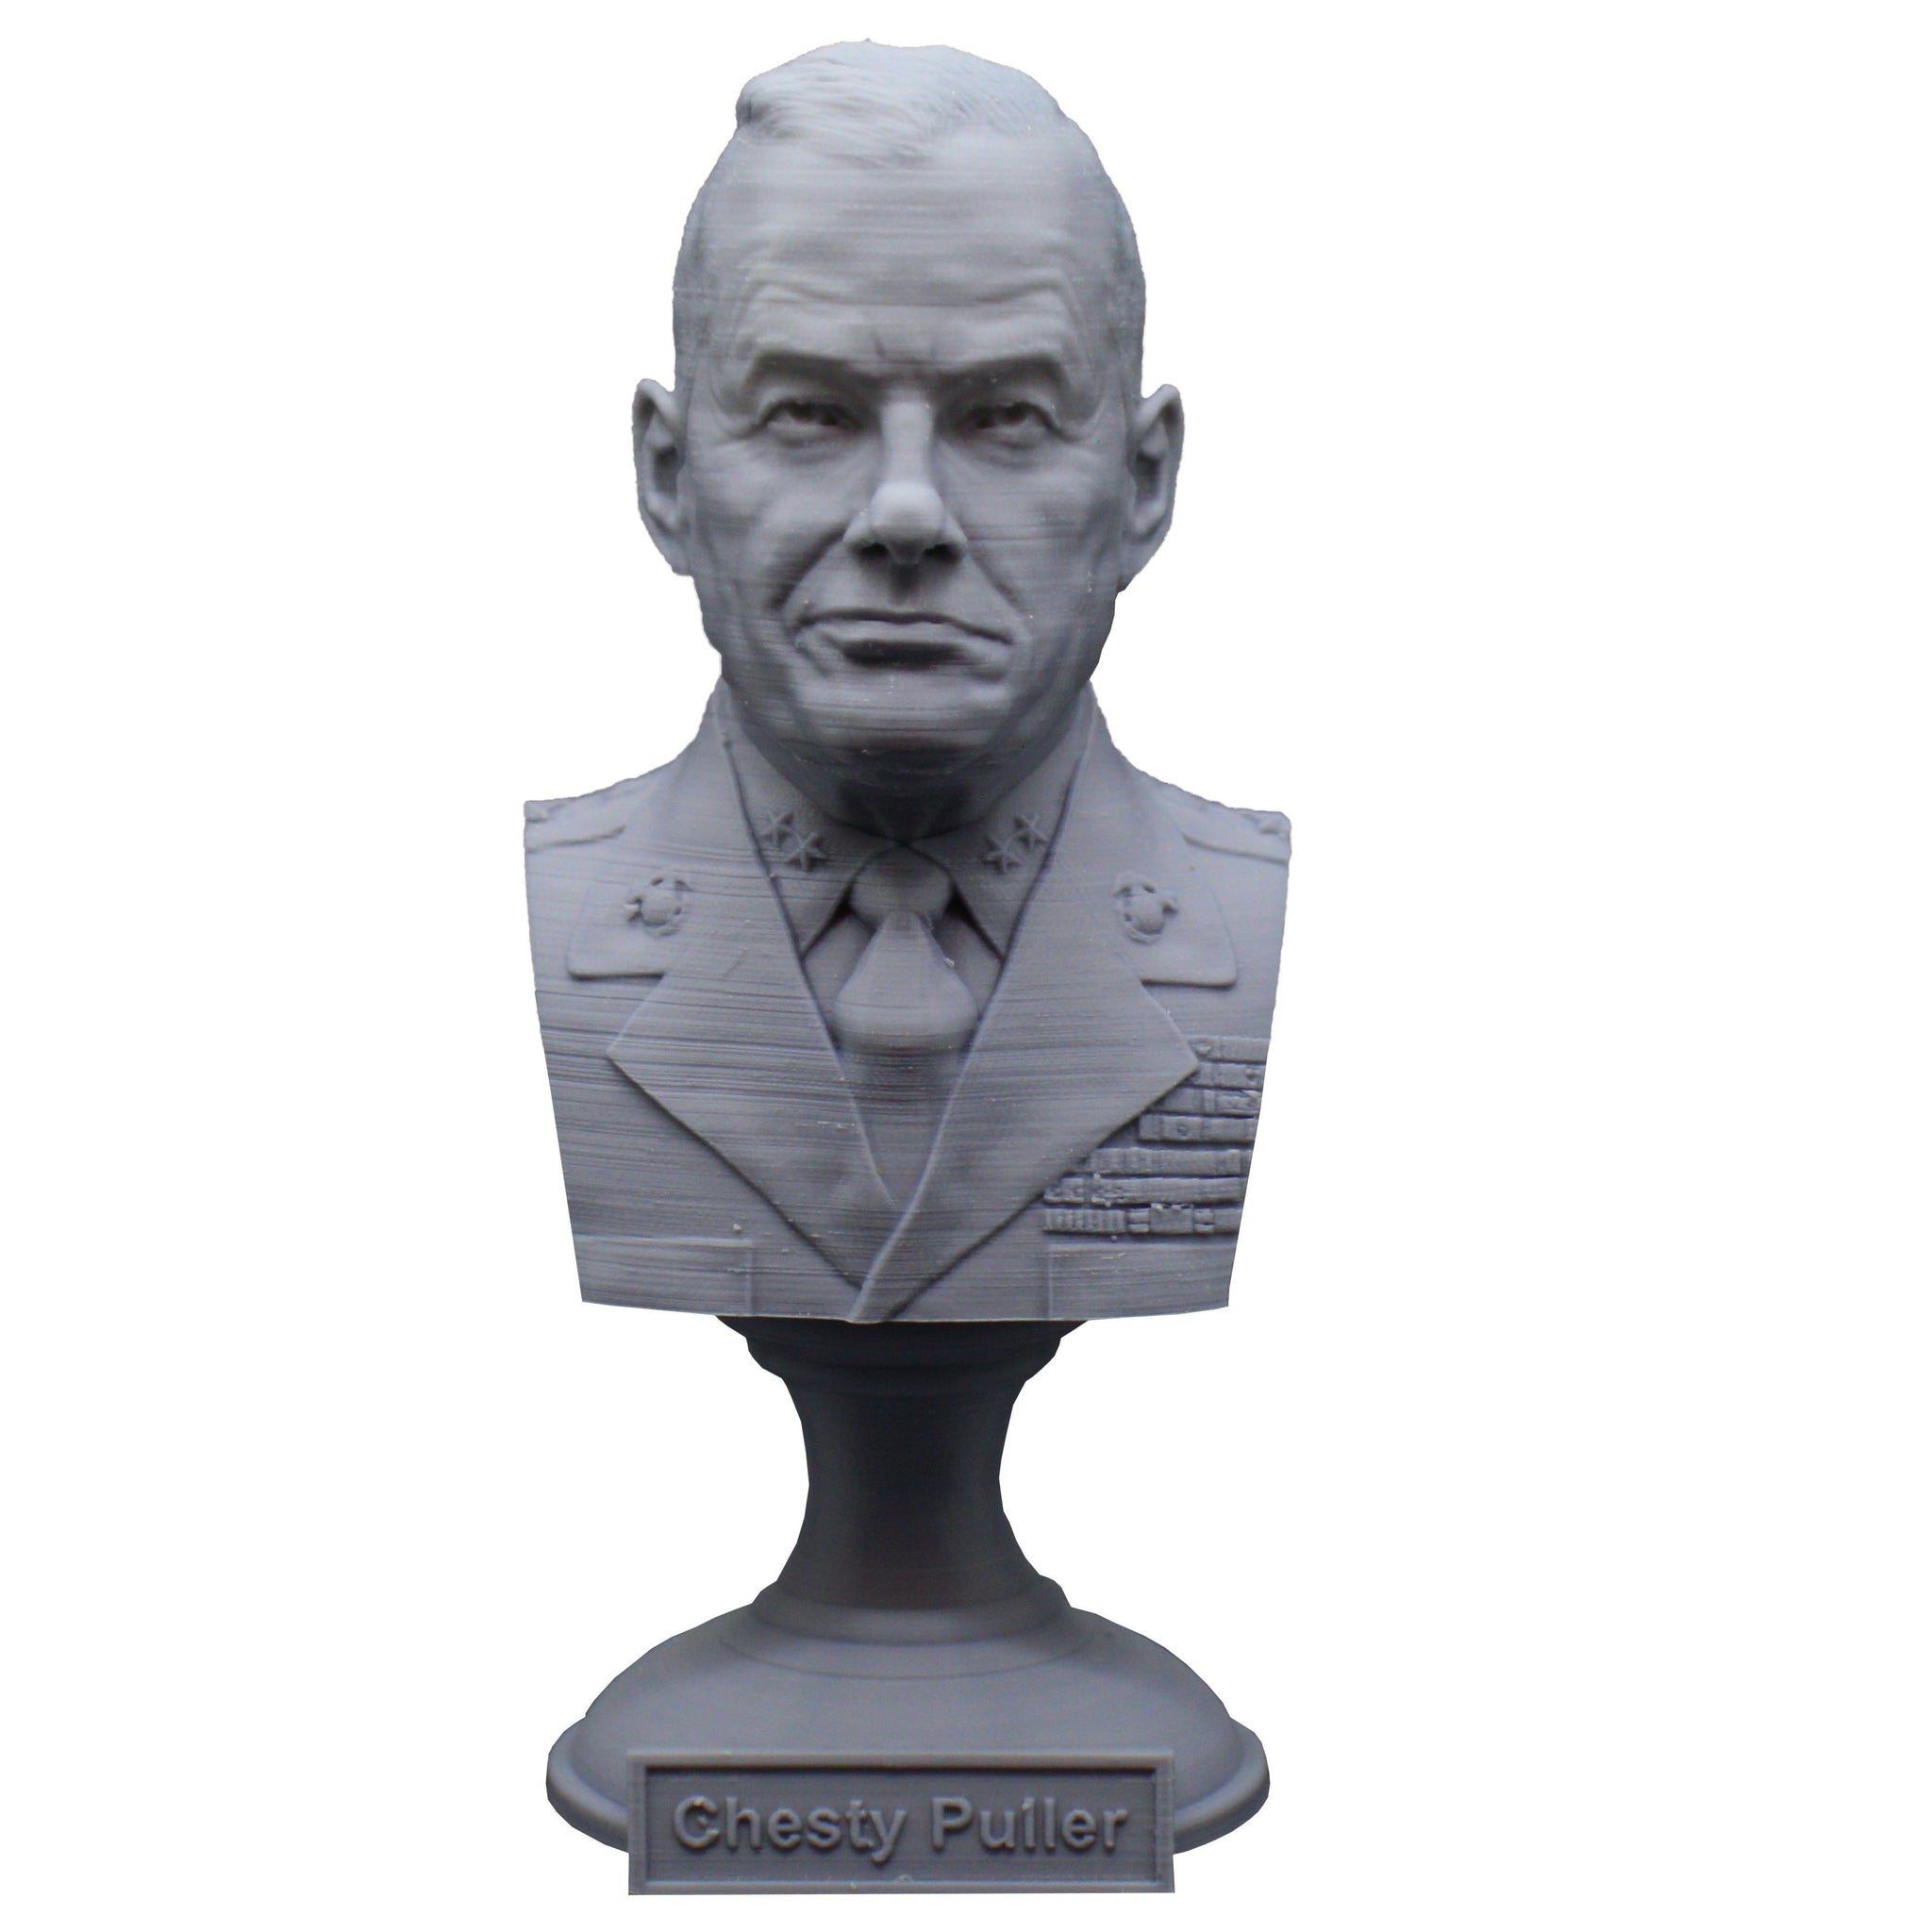 "Lewis Burwell ""Chesty"" Puller Legendary US Marine Corps General Sculpture Bust on Pedestal"